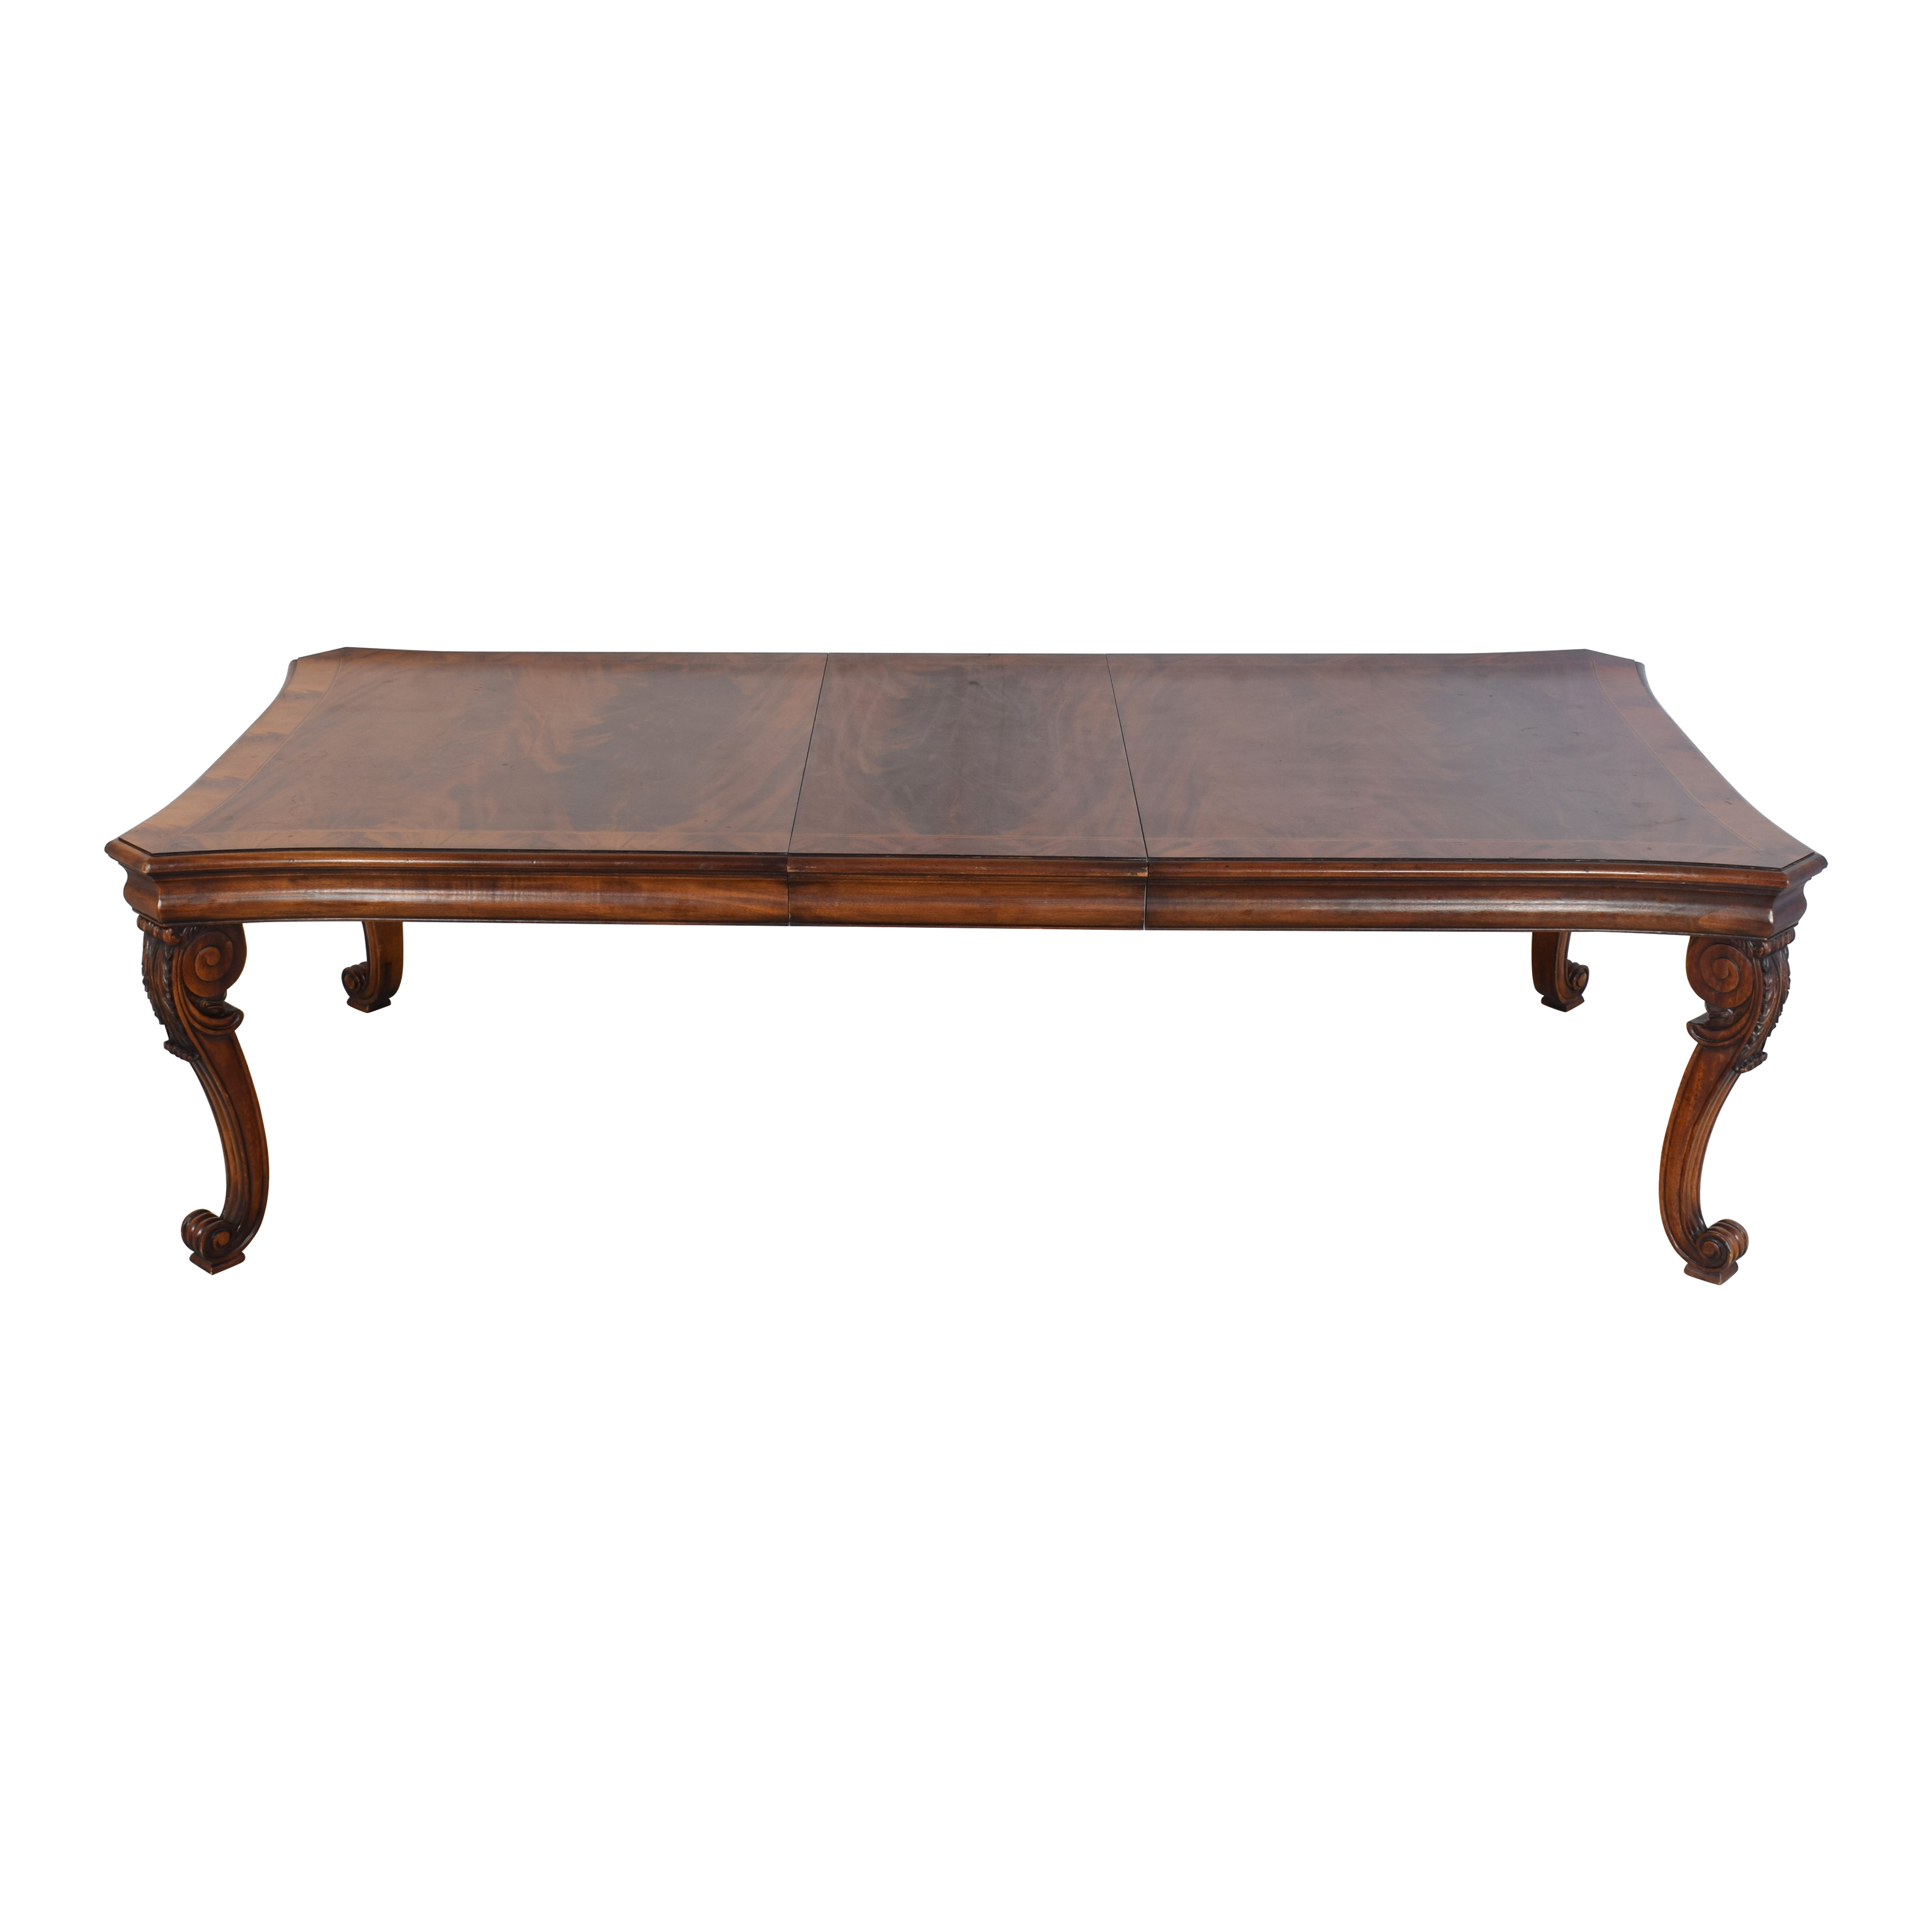 Ralph Lauren Home Ralph Lauren Home Beekman Mahogany Dining Table with Two Additional Leaves coupon